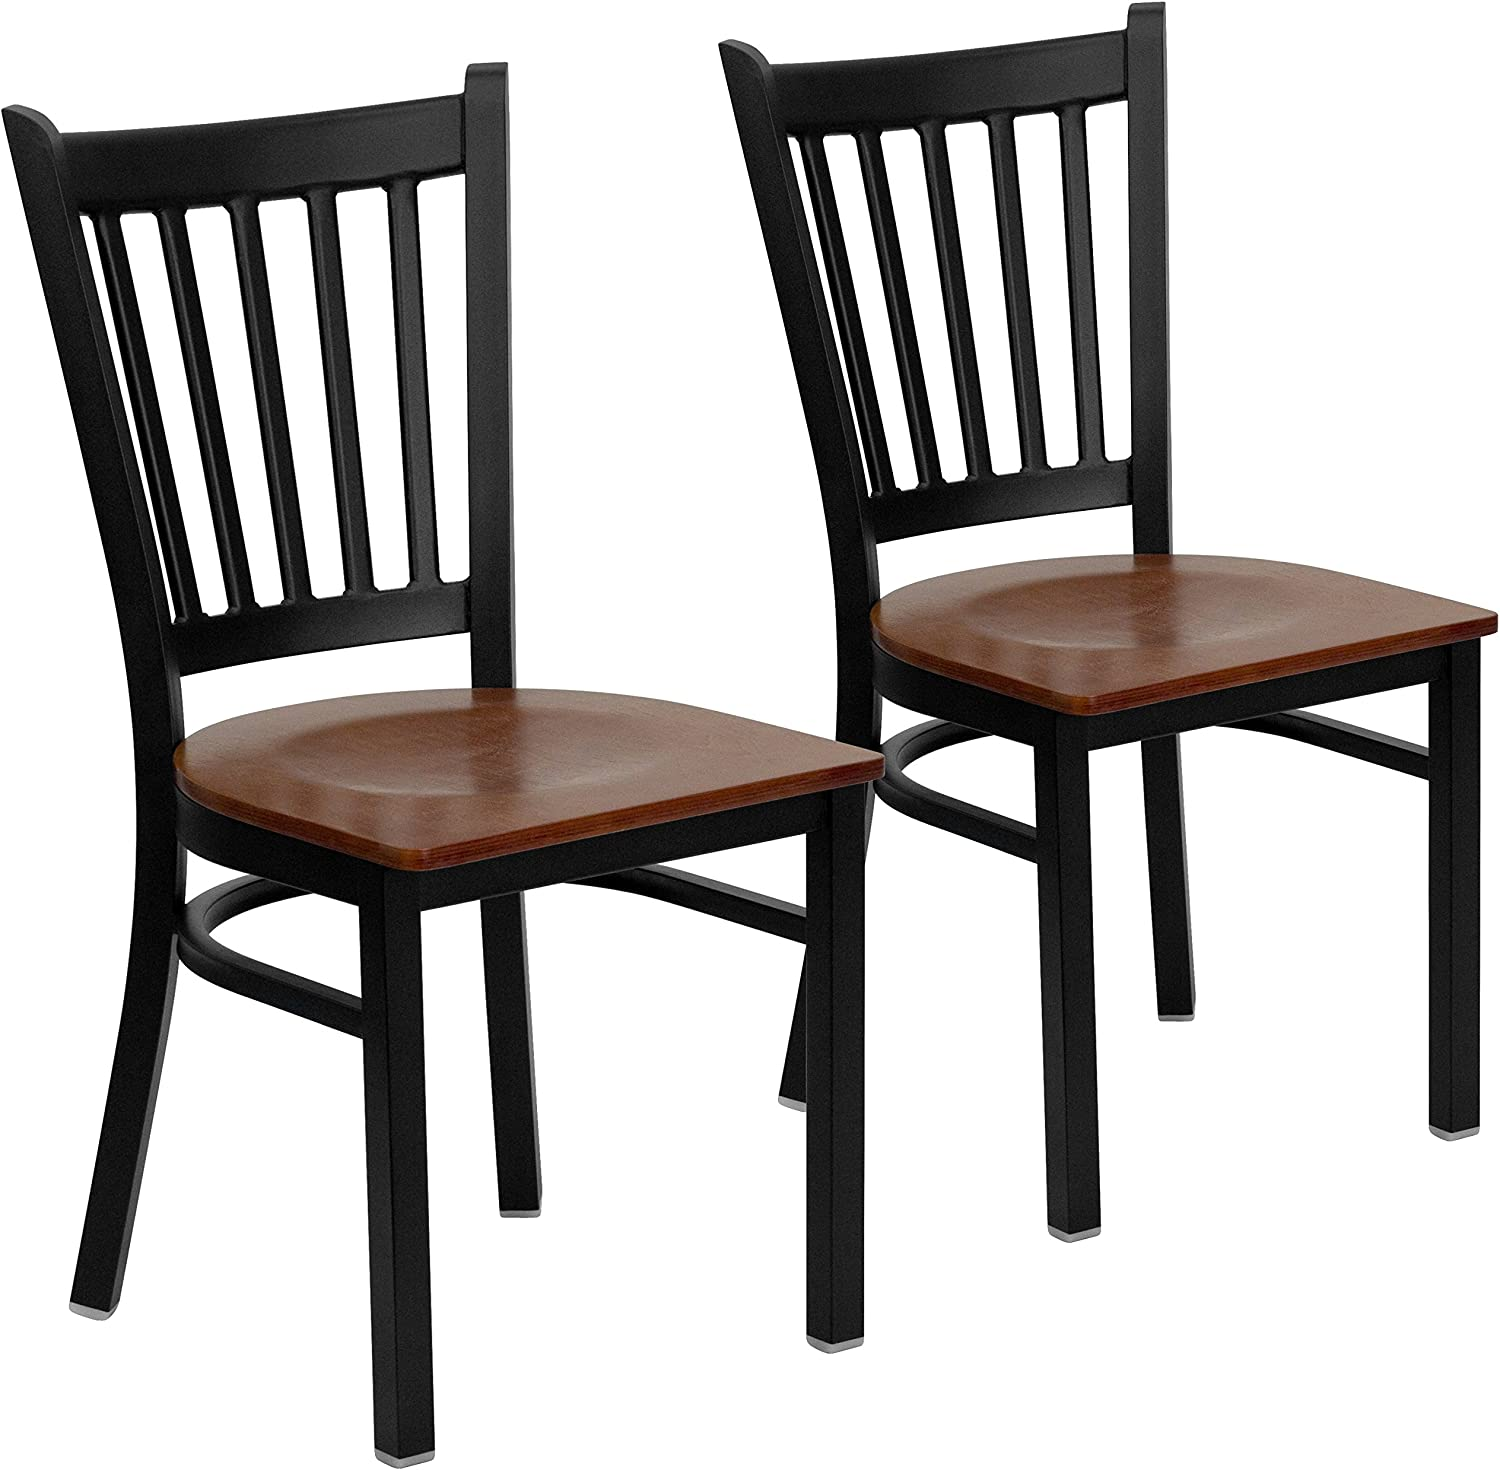 Flash Furniture 2 Pk. Hercules Series Black greenical Back Metal Restaurant Chair - Cherry Wood Seat